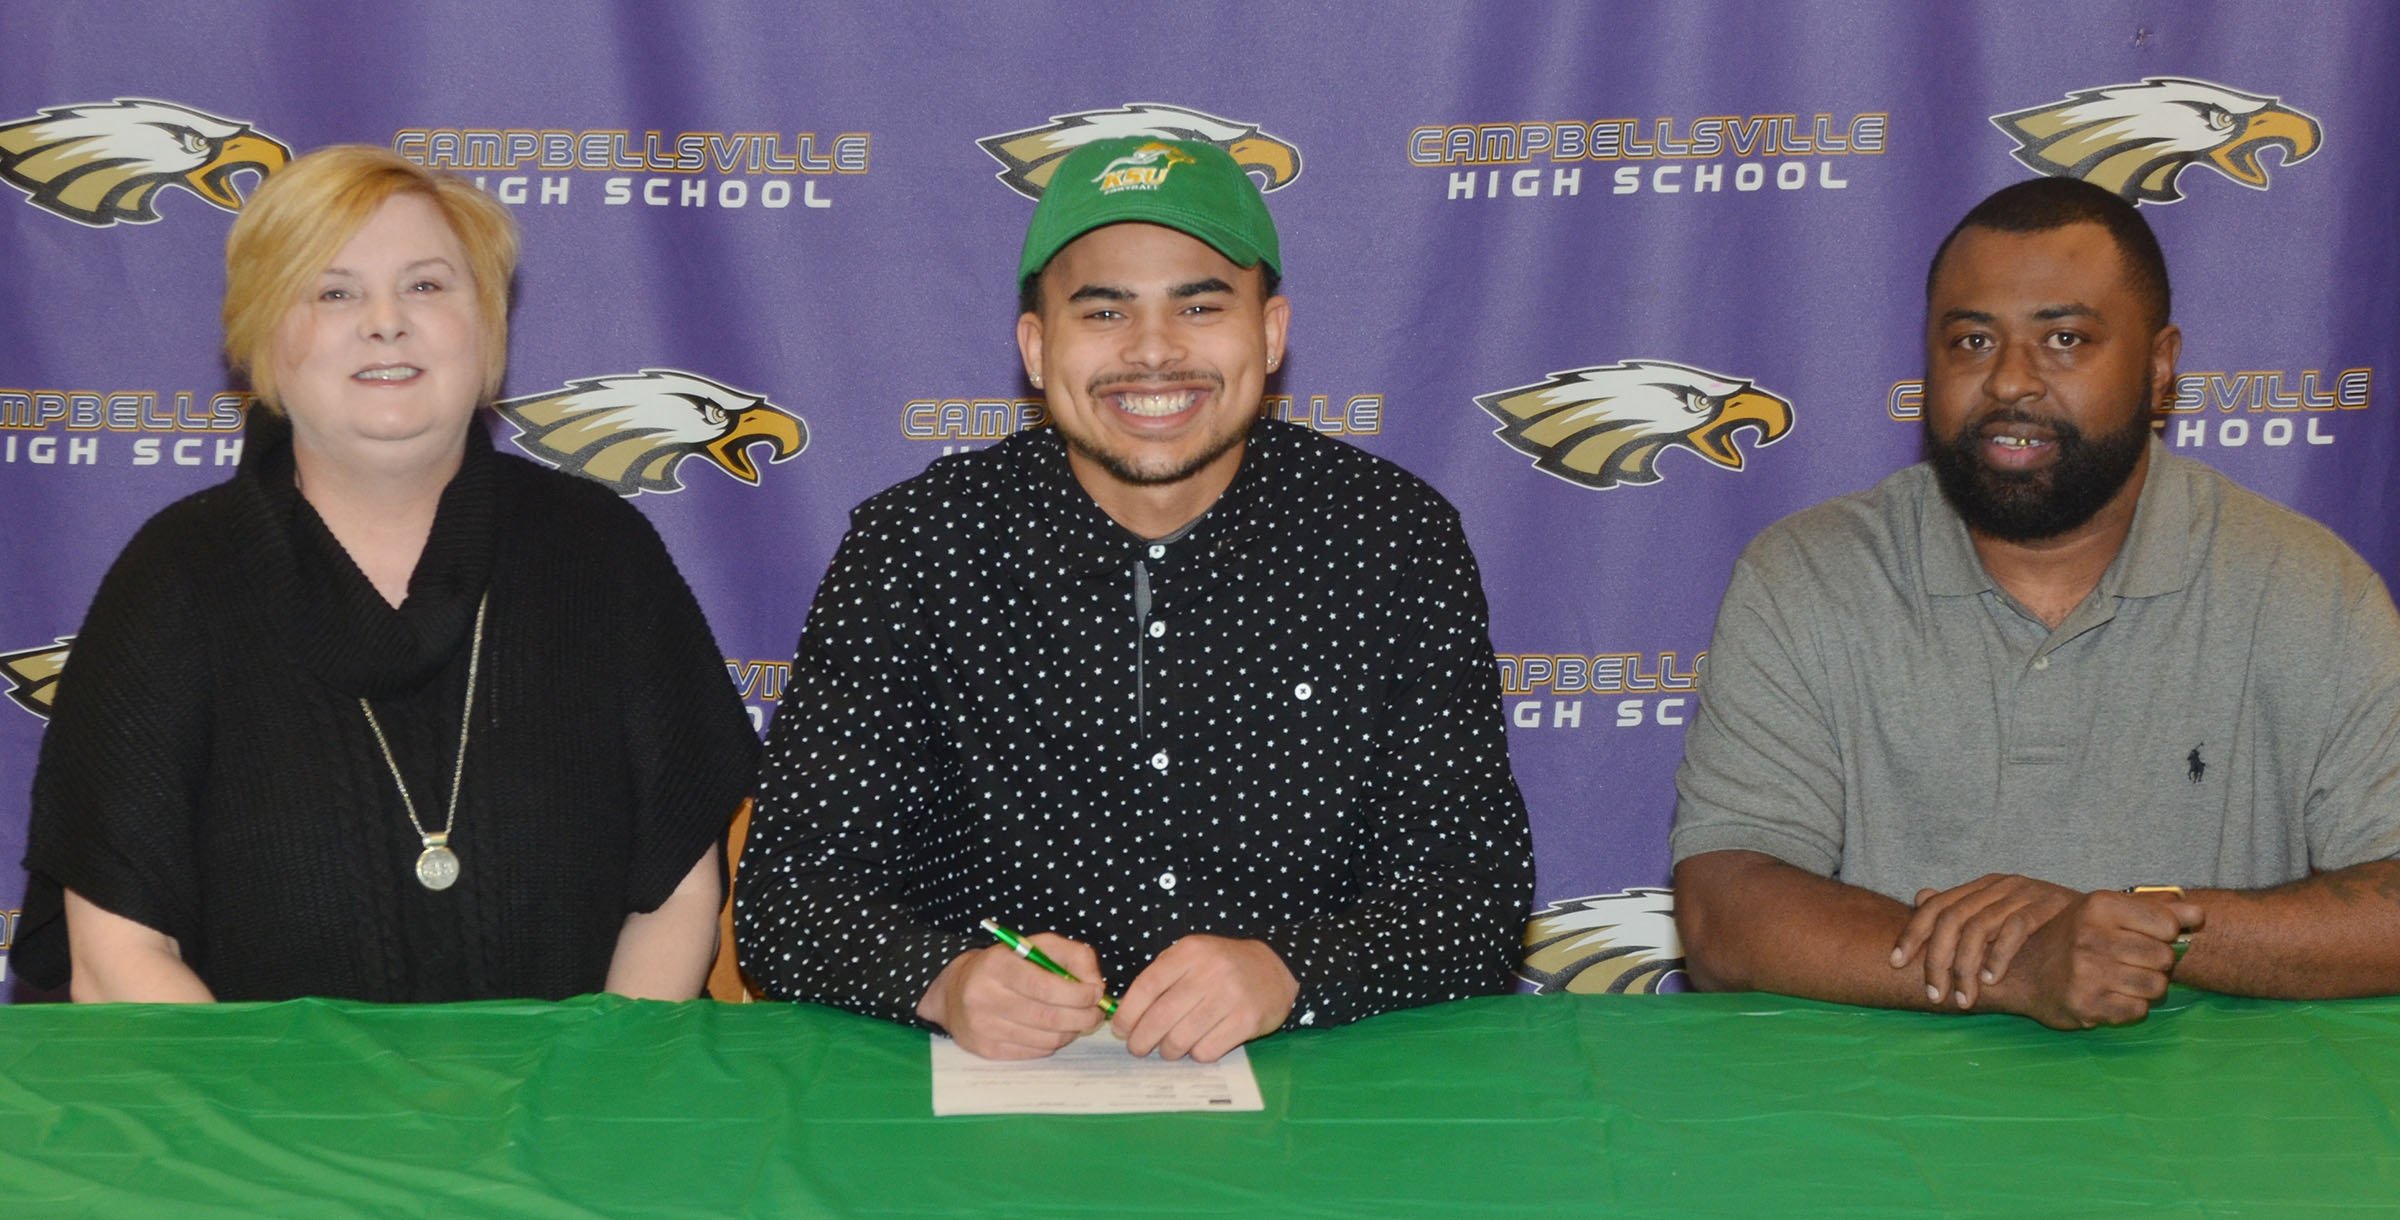 CHS seniors Micah Corley and Arick Groves will continue their academic and football careers at Kentucky State University this fall. The two signed their letters of intent in a special ceremony on Monday, Feb. 6. Pictured with Groves, center, are his mother Emily Farris and father Ty Groves.